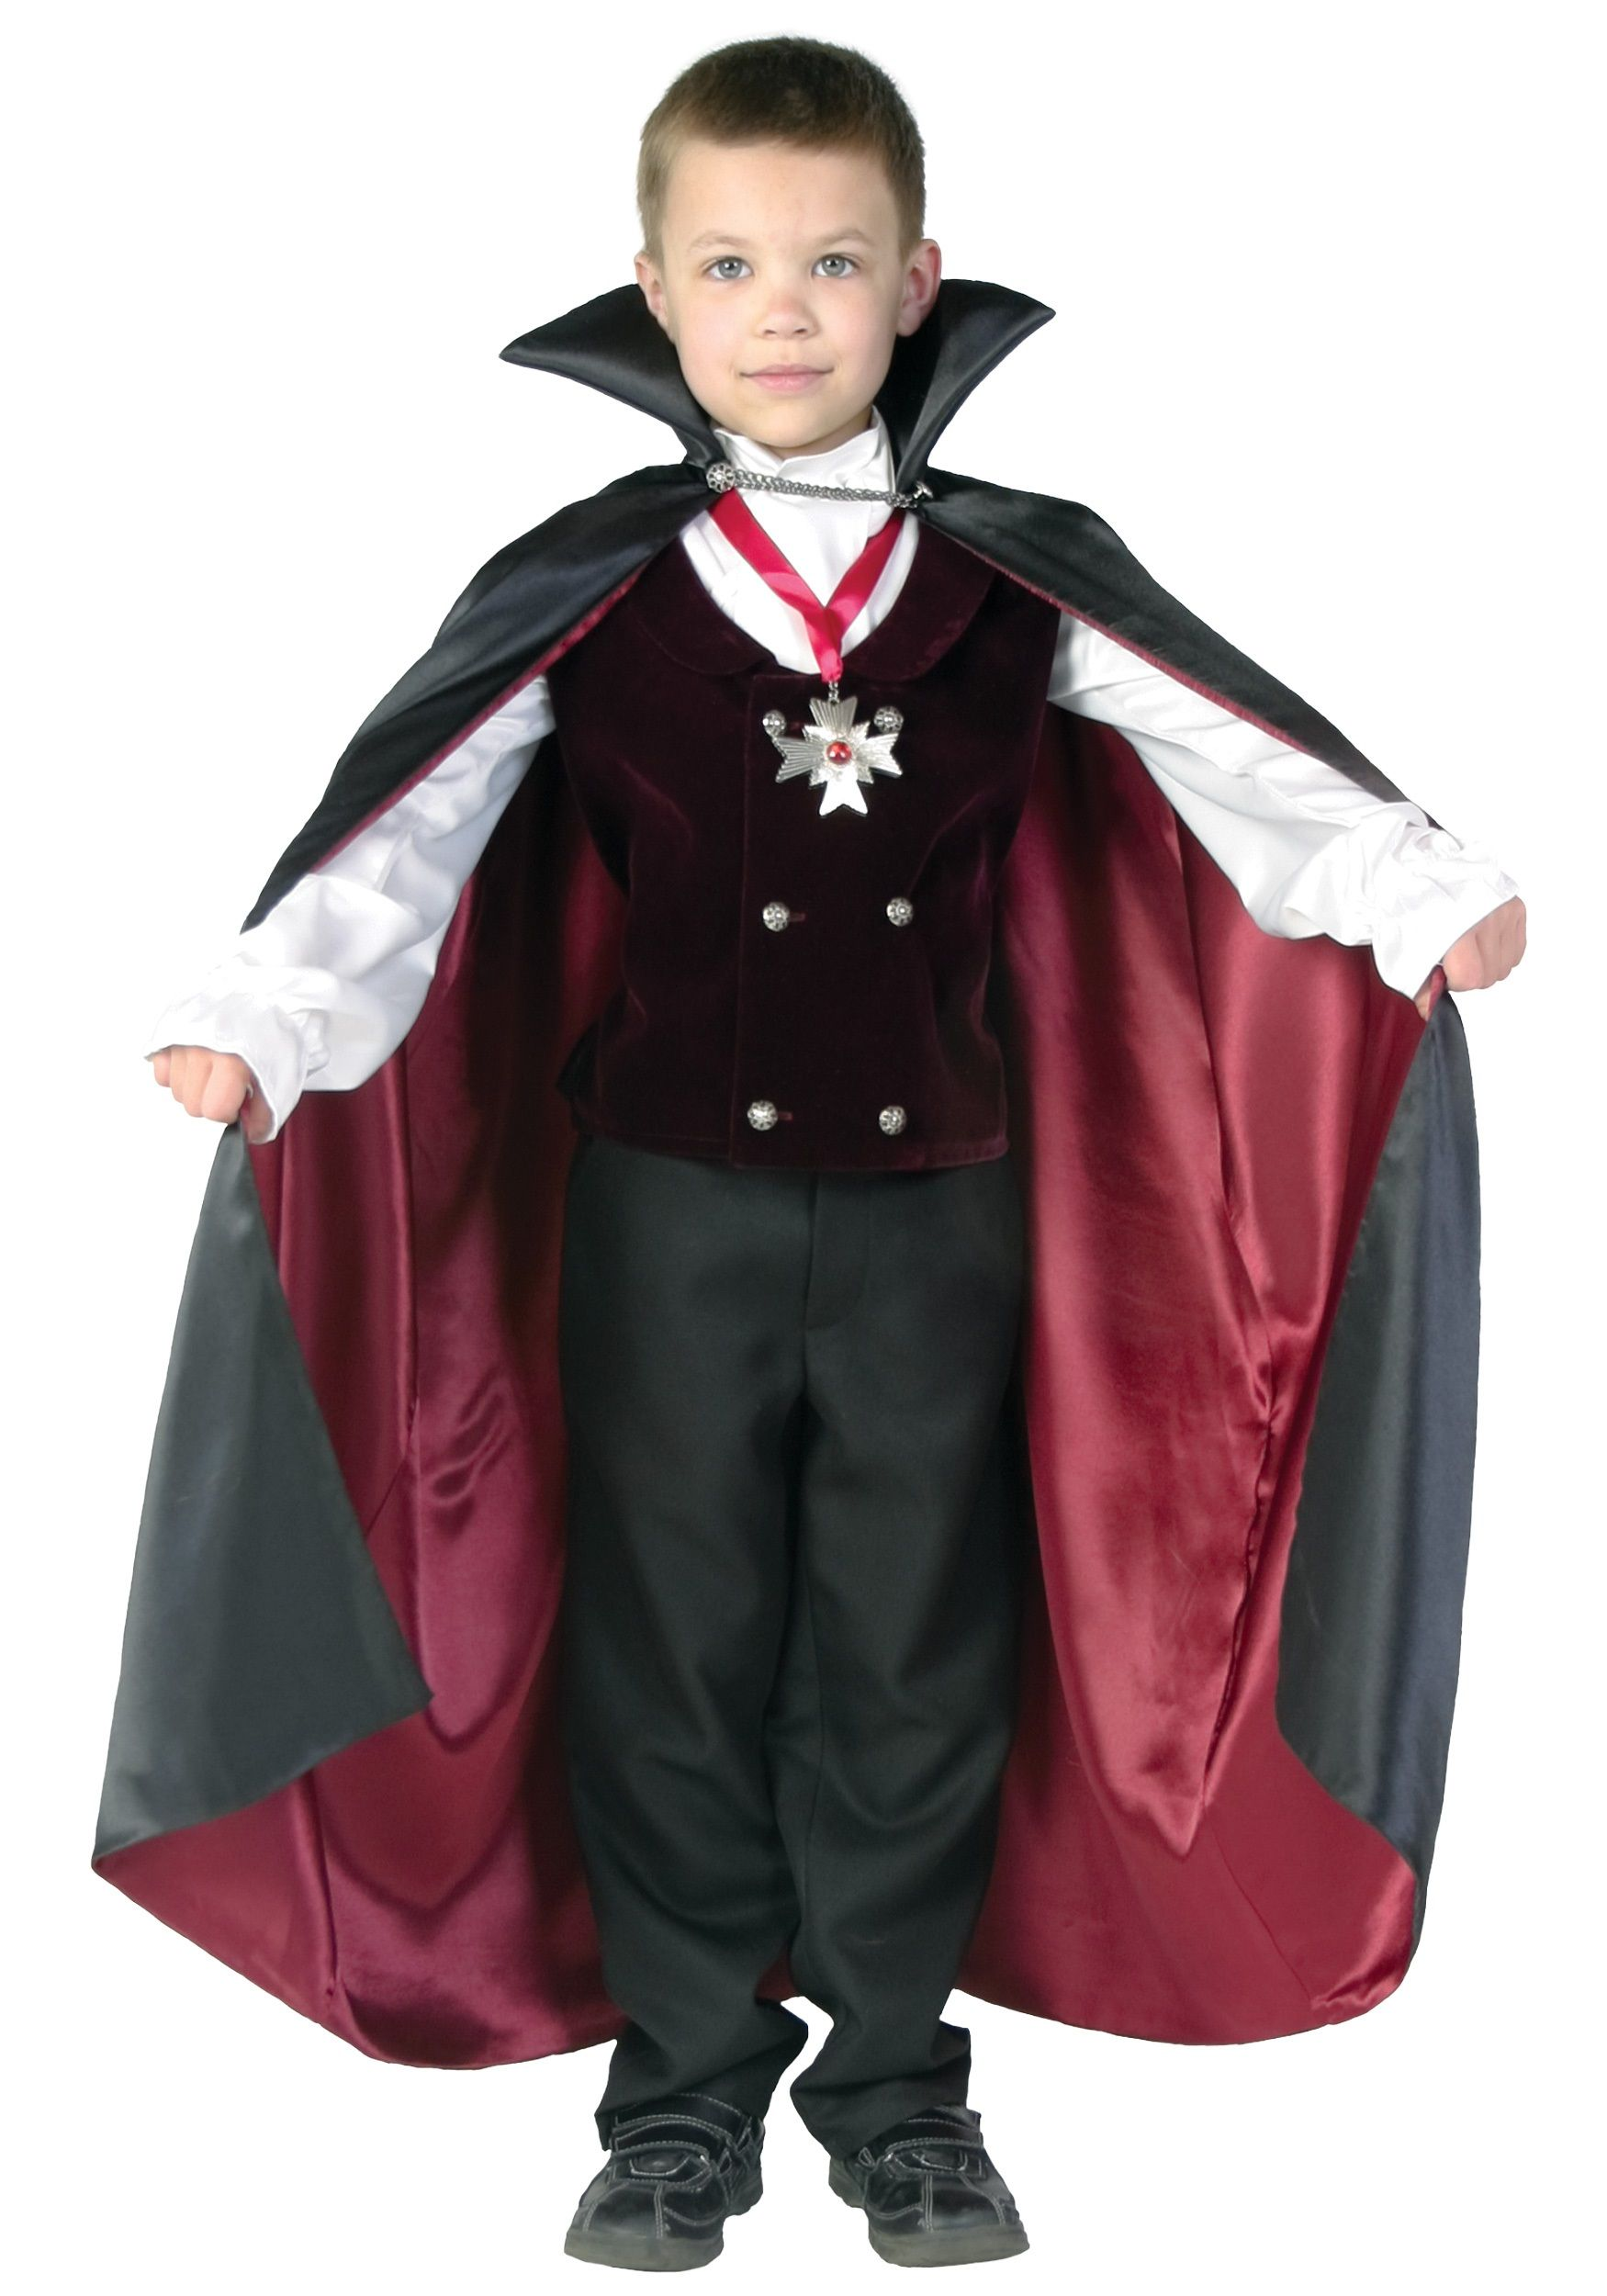 Select the best costume for your child. Description from